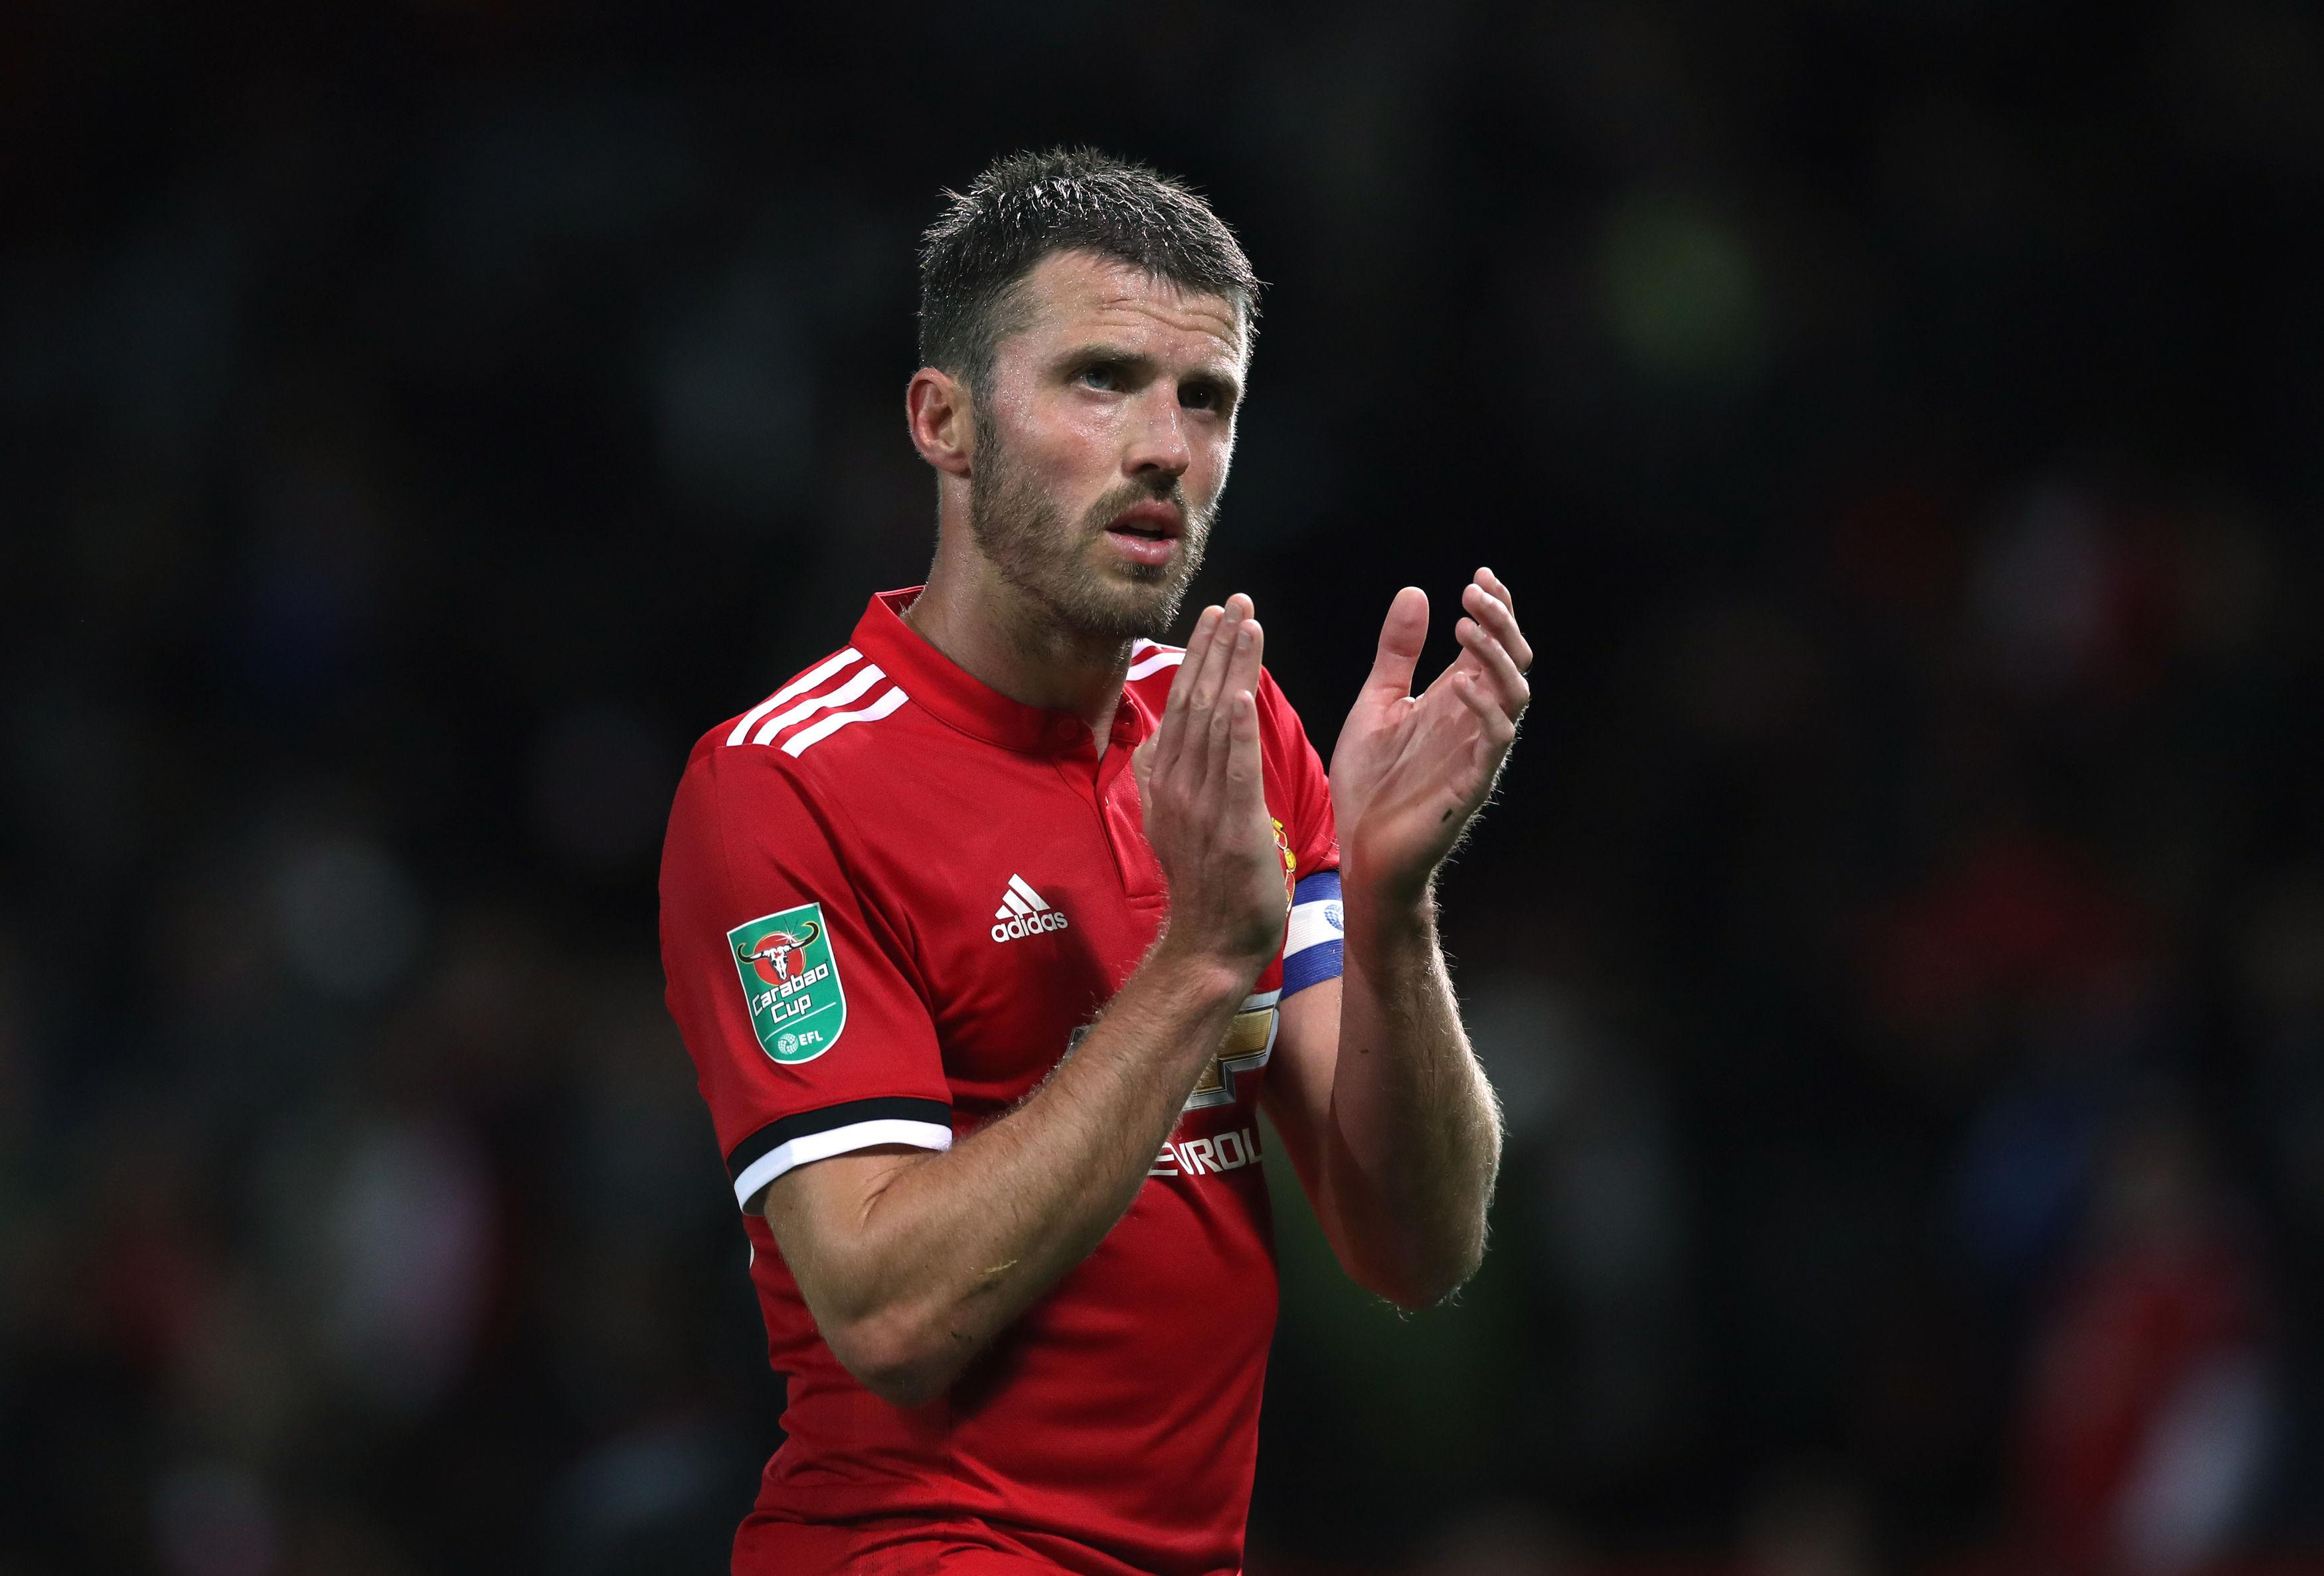 Carrick last played in September